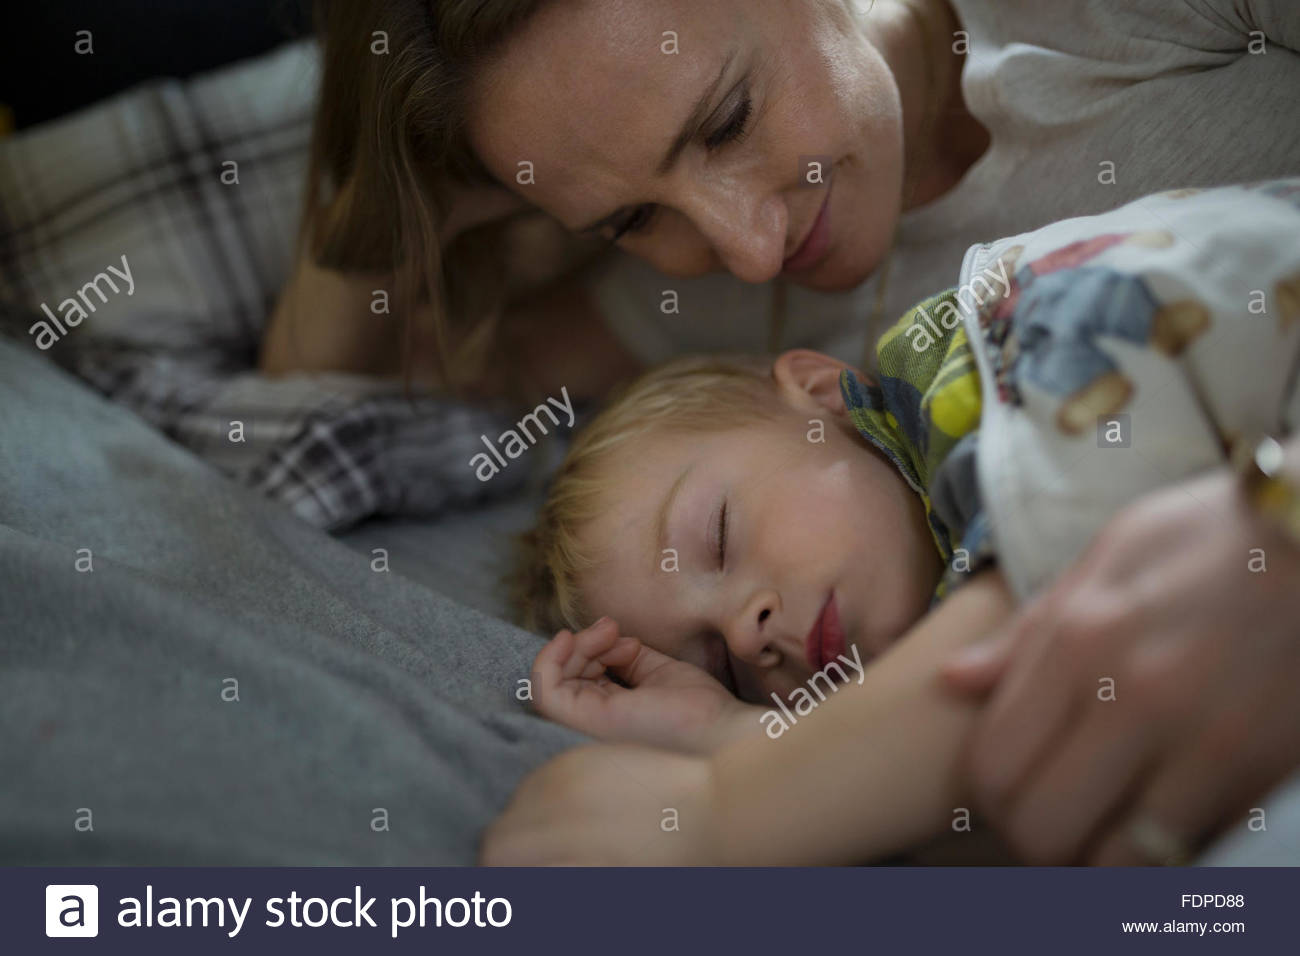 Affectionate mother watching sleeping son in bed - Stock Image